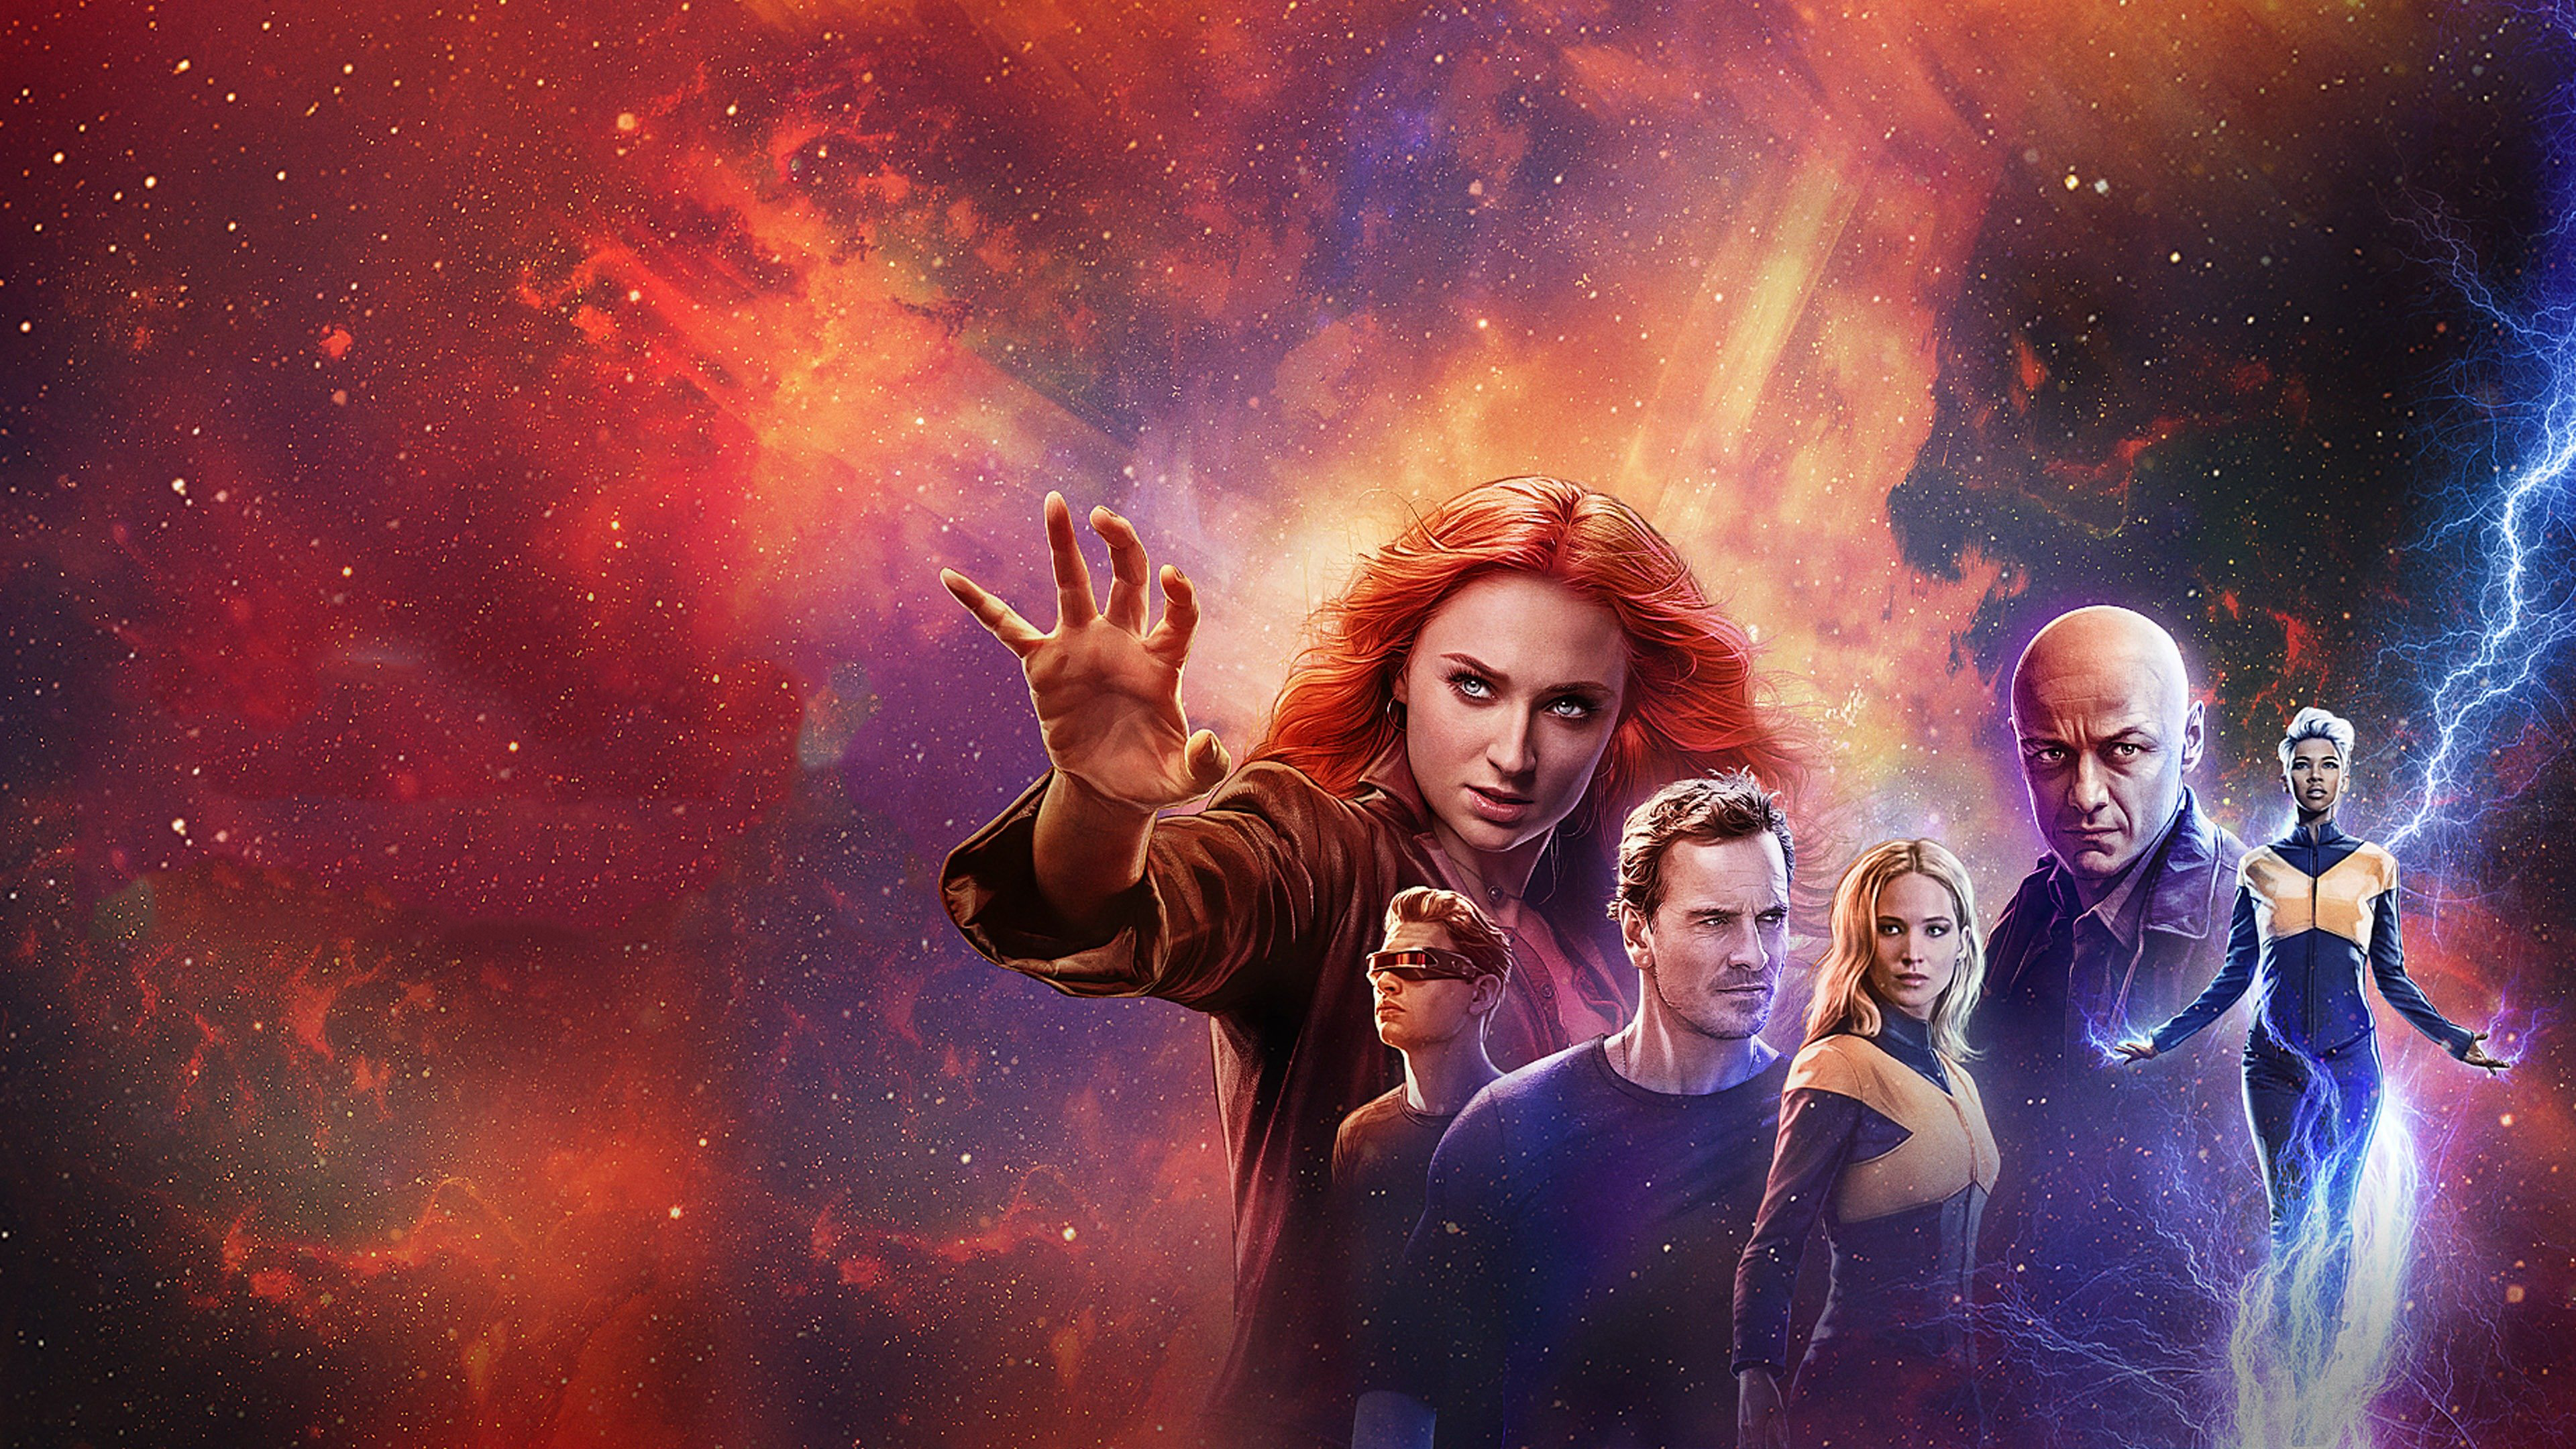 Wallpaper 4k X Men Dark Phoenix 2019 Poster 2019 Movies Wallpapers 4k Wallpapers Hd Wallpapers Jean Grey Wallpapers Movies Wallpapers X Men Dark Phoenix Wallpapers